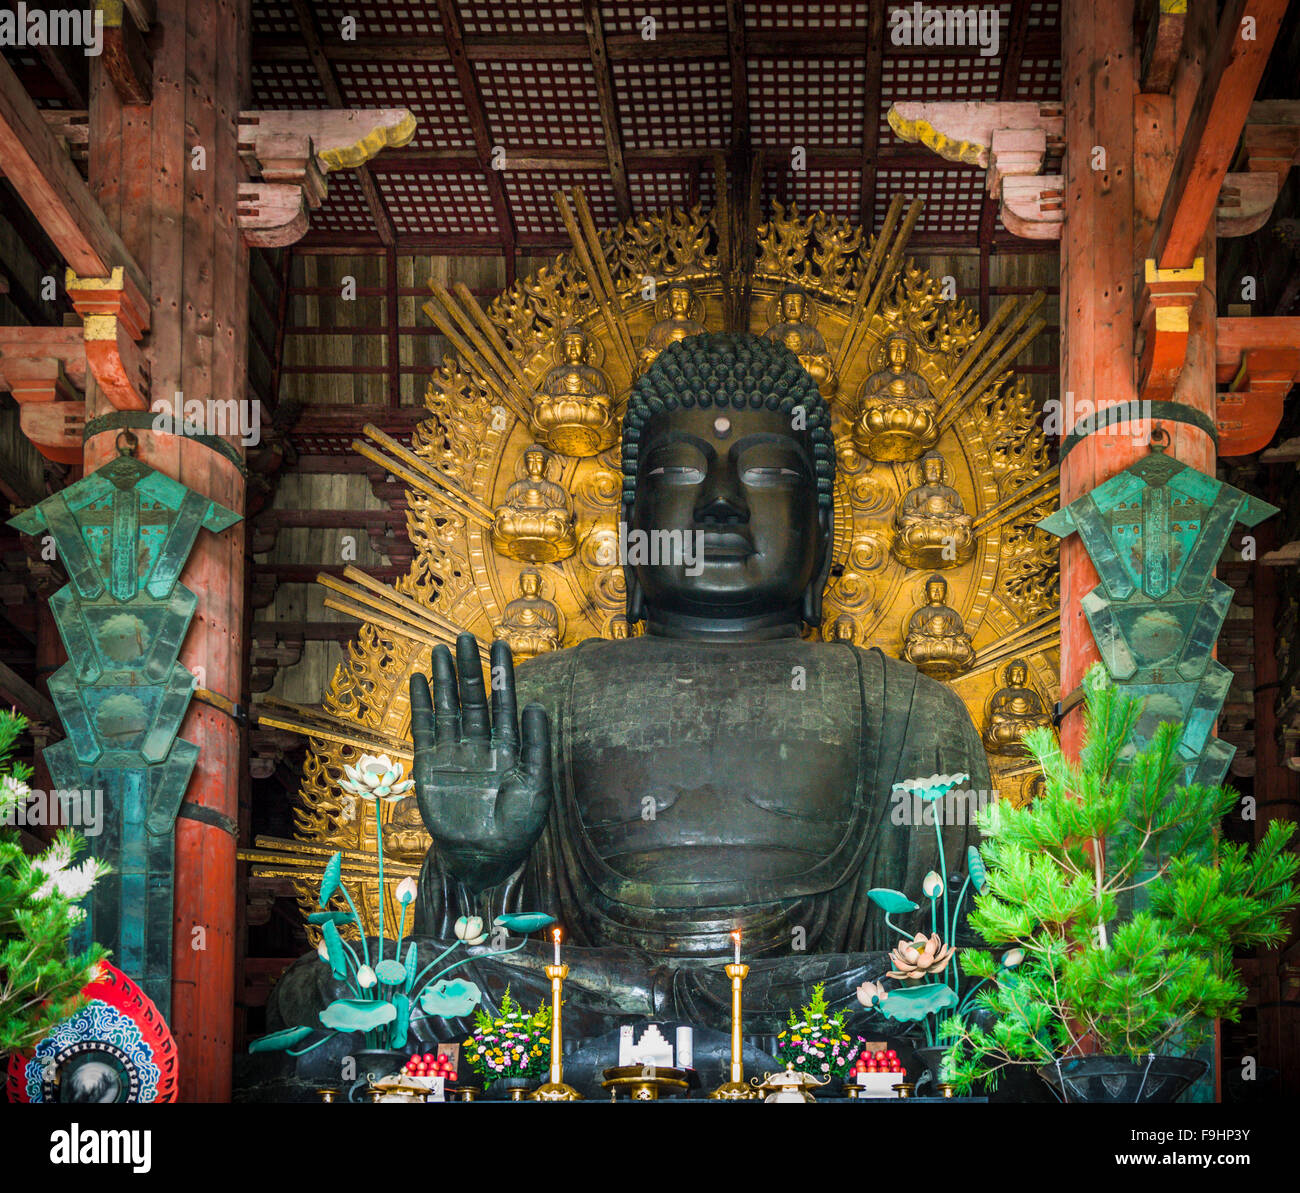 BRONZE BUDDHA, TODAI TEMPLE (752)  NARA  JAPAN Stock Photo